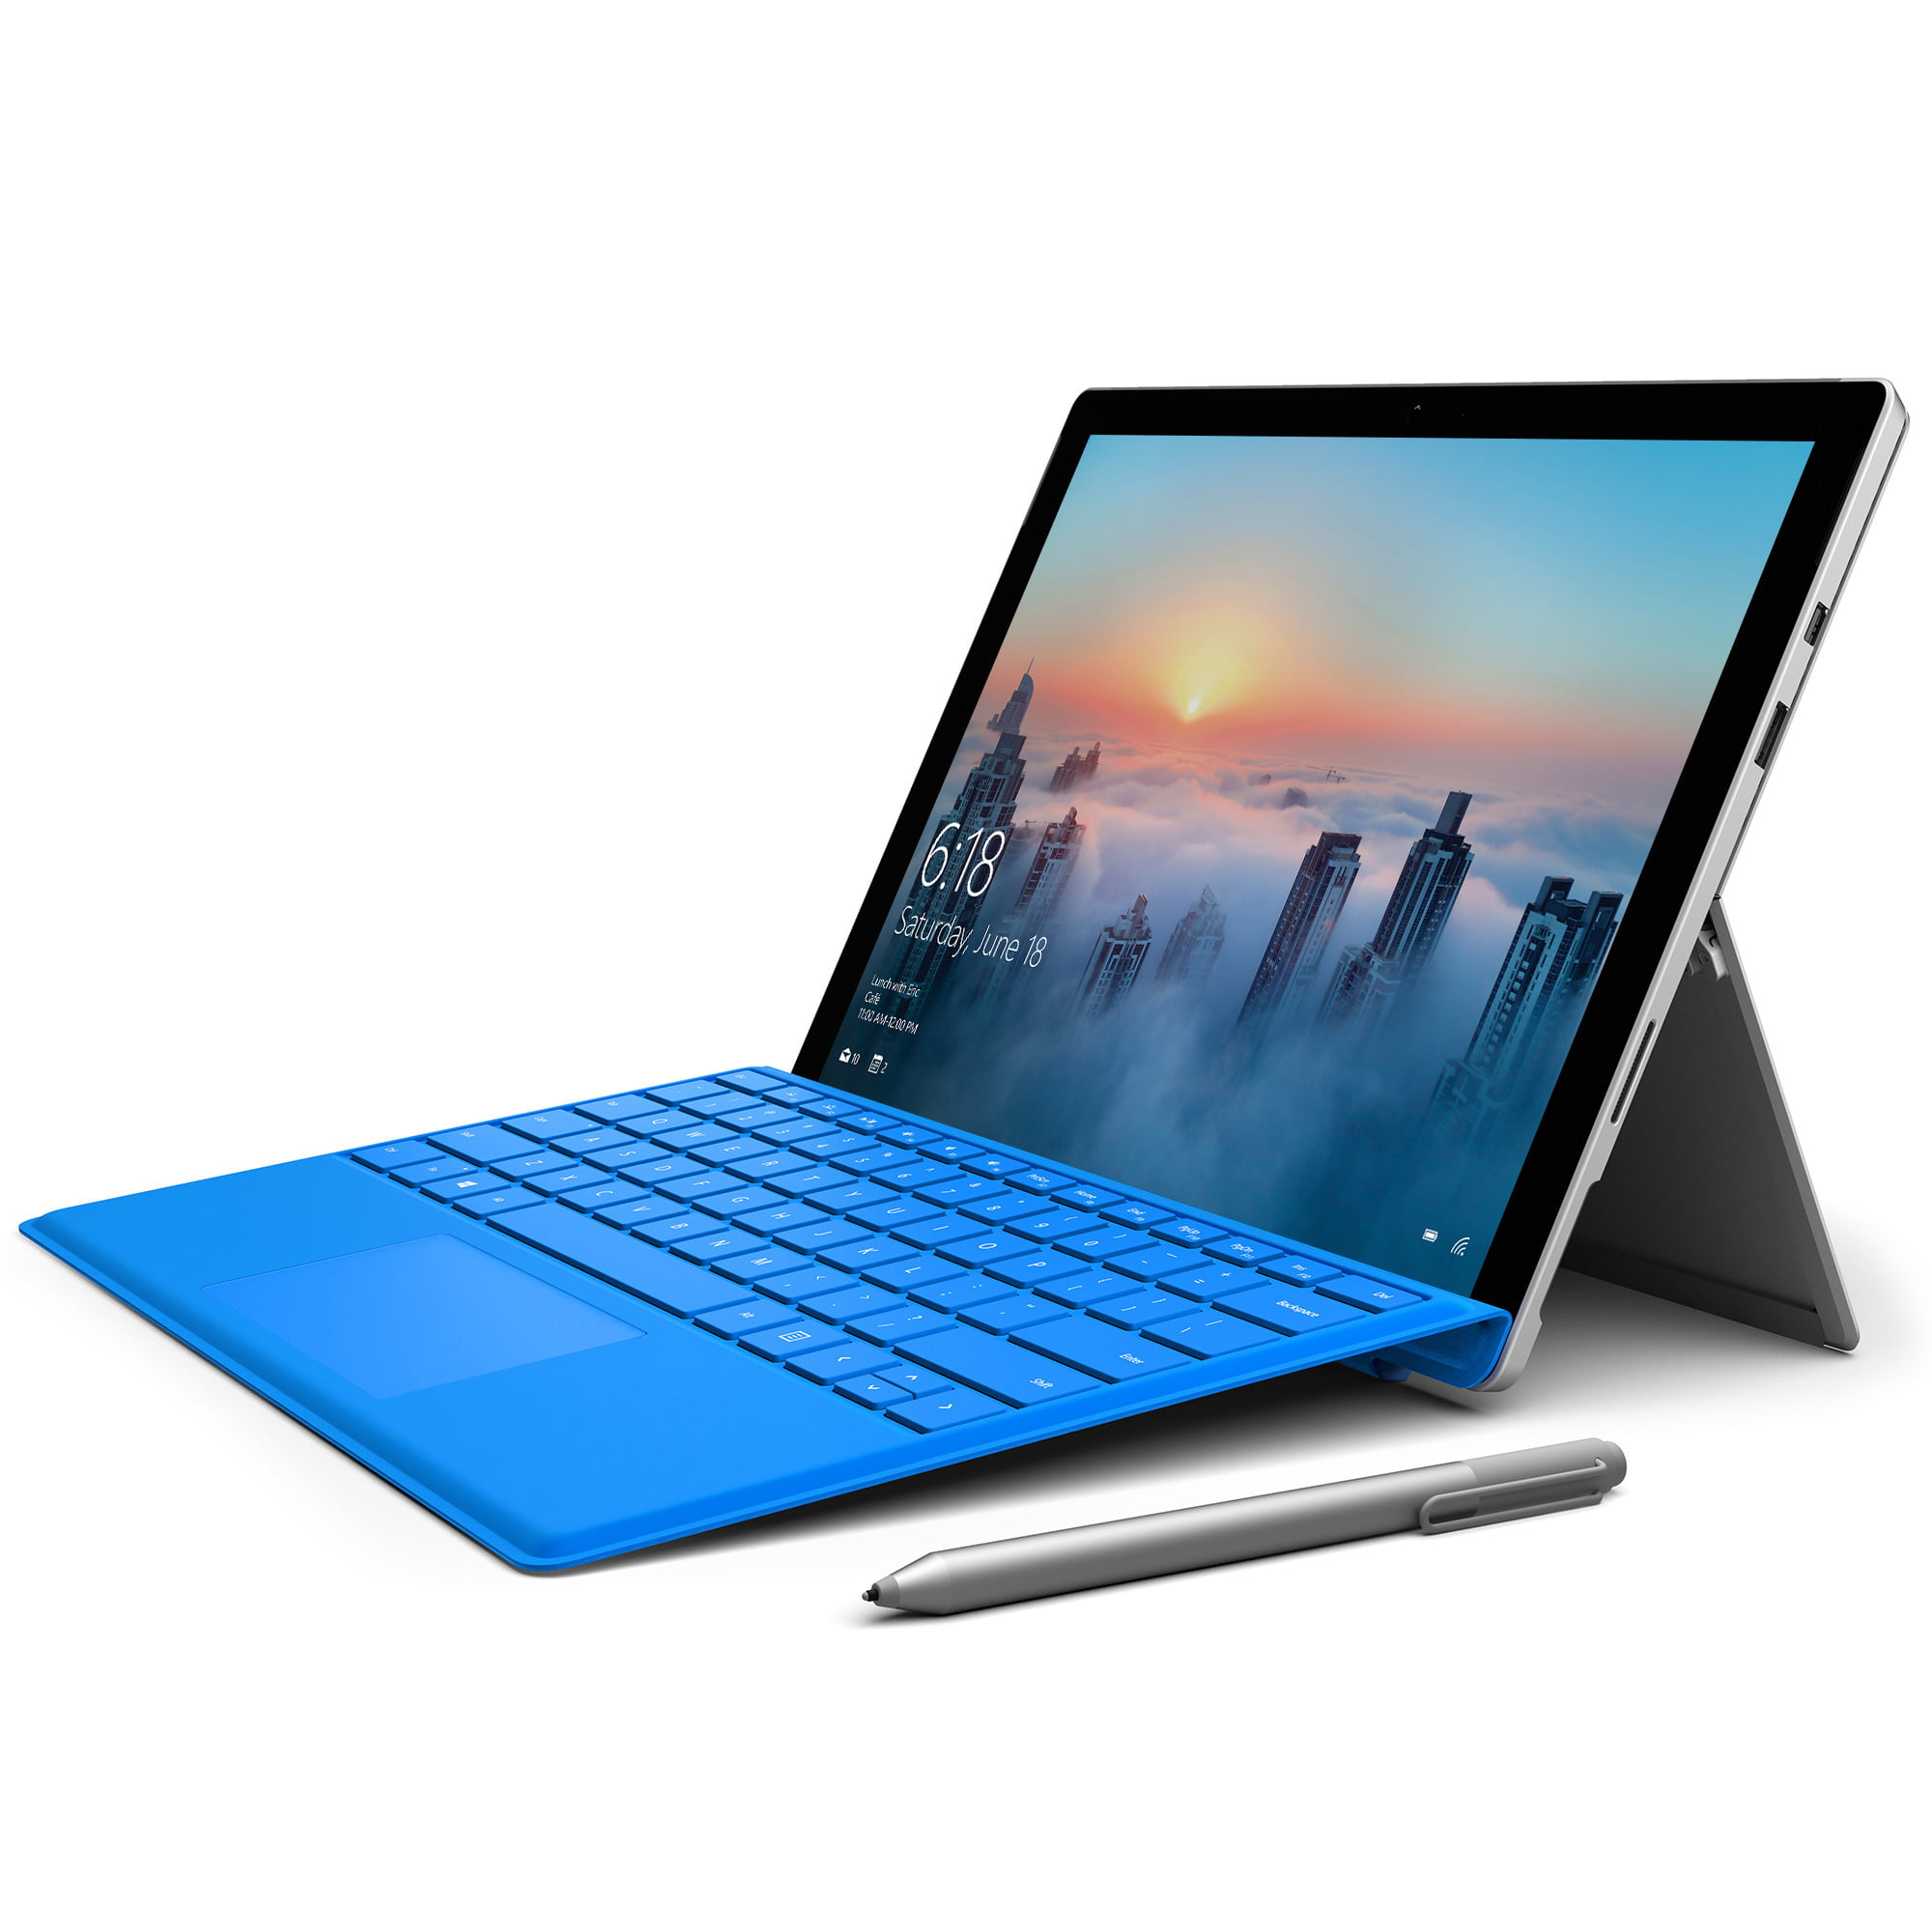 Microsoft Surface Pro 4 Drivers Update